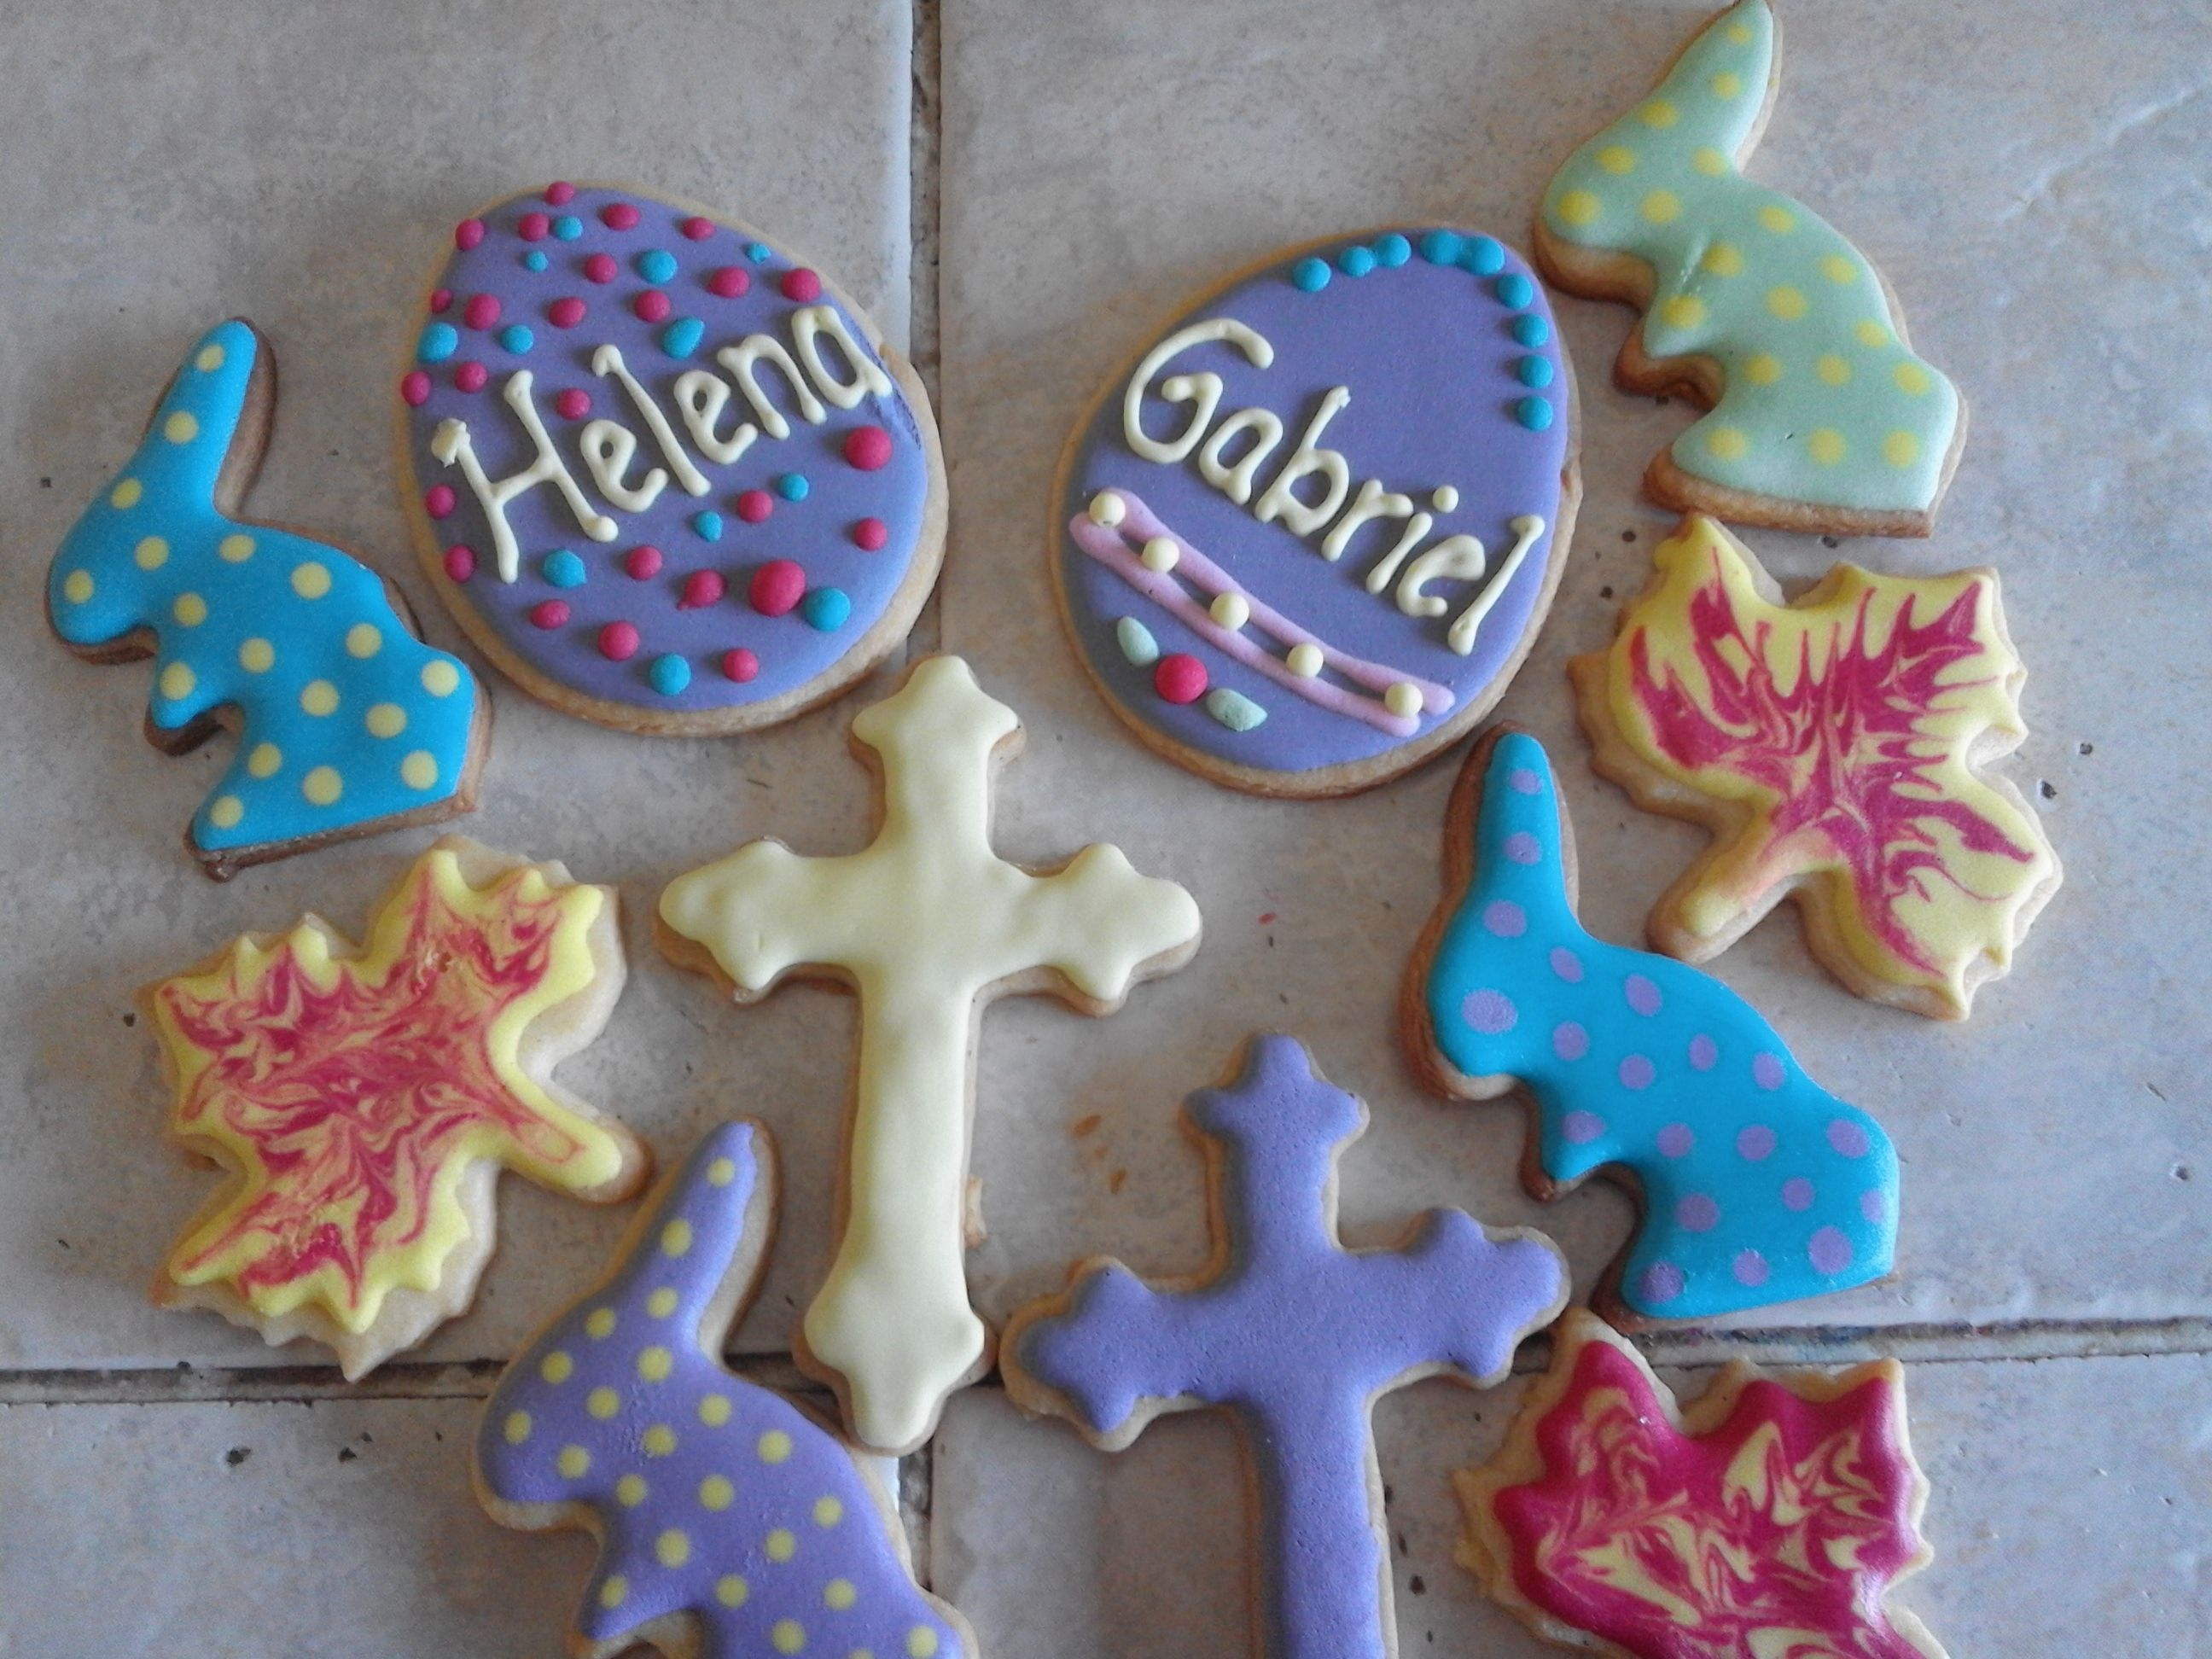 #Easter and #Autumn #SouthernHemisphere #Cookies